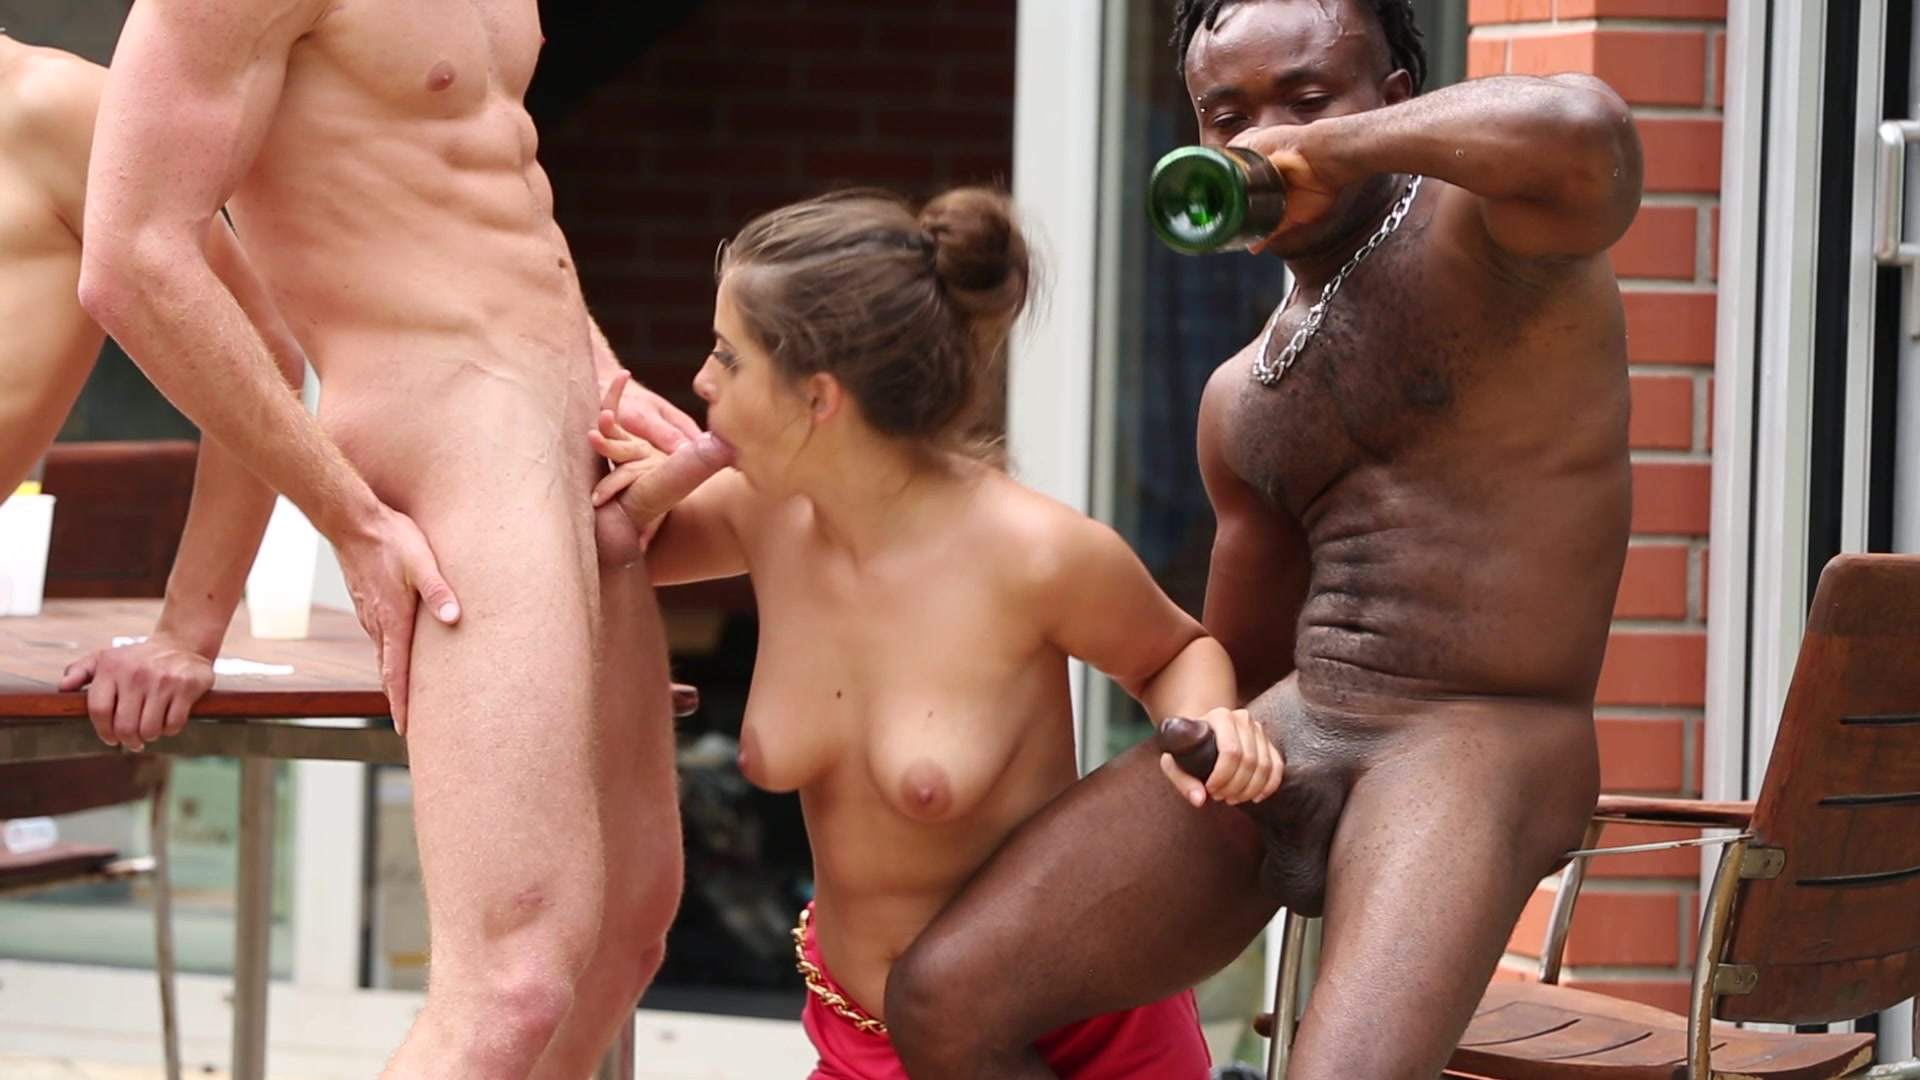 Bisexual free gallery porn